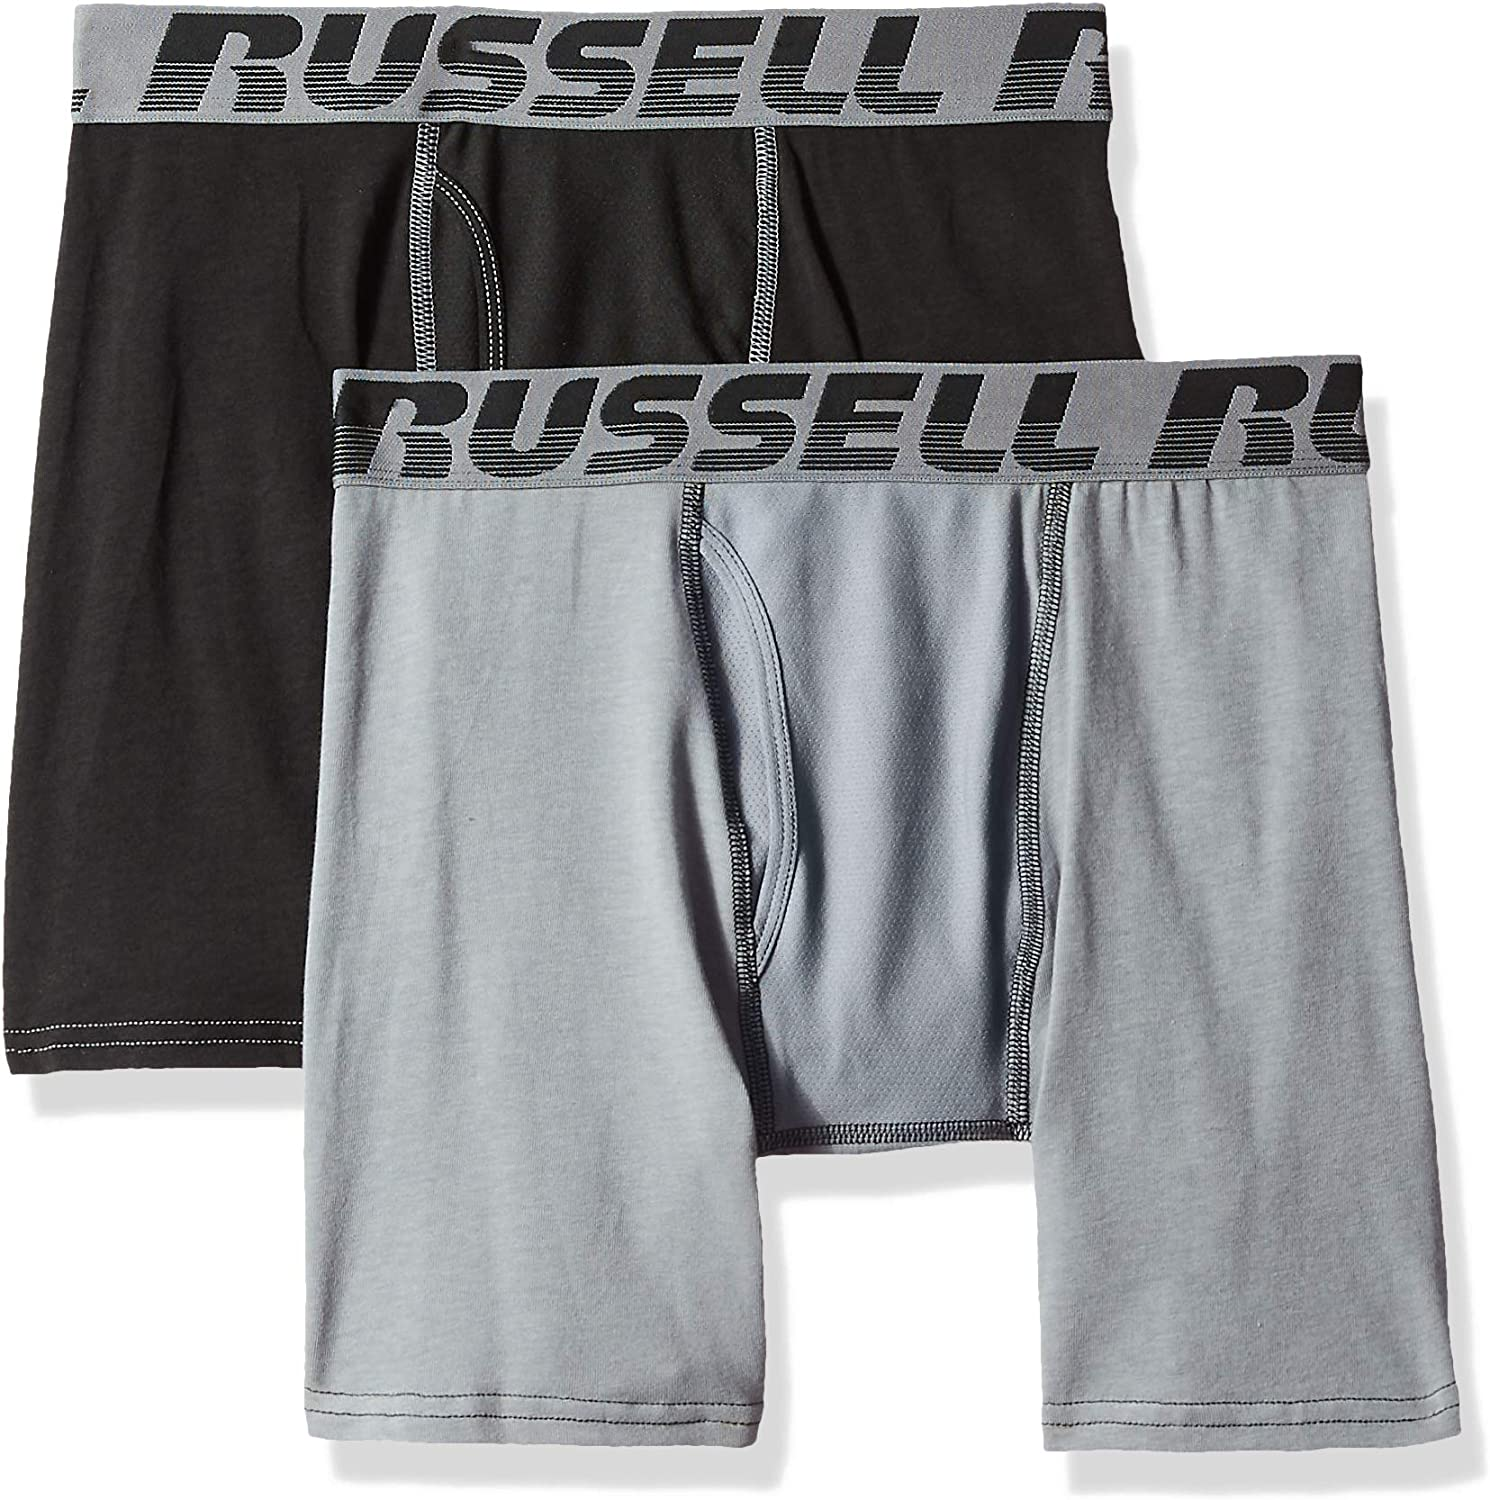 Russell Athletic Men's Cotton Performance Comfort Stretch Boxer Briefs